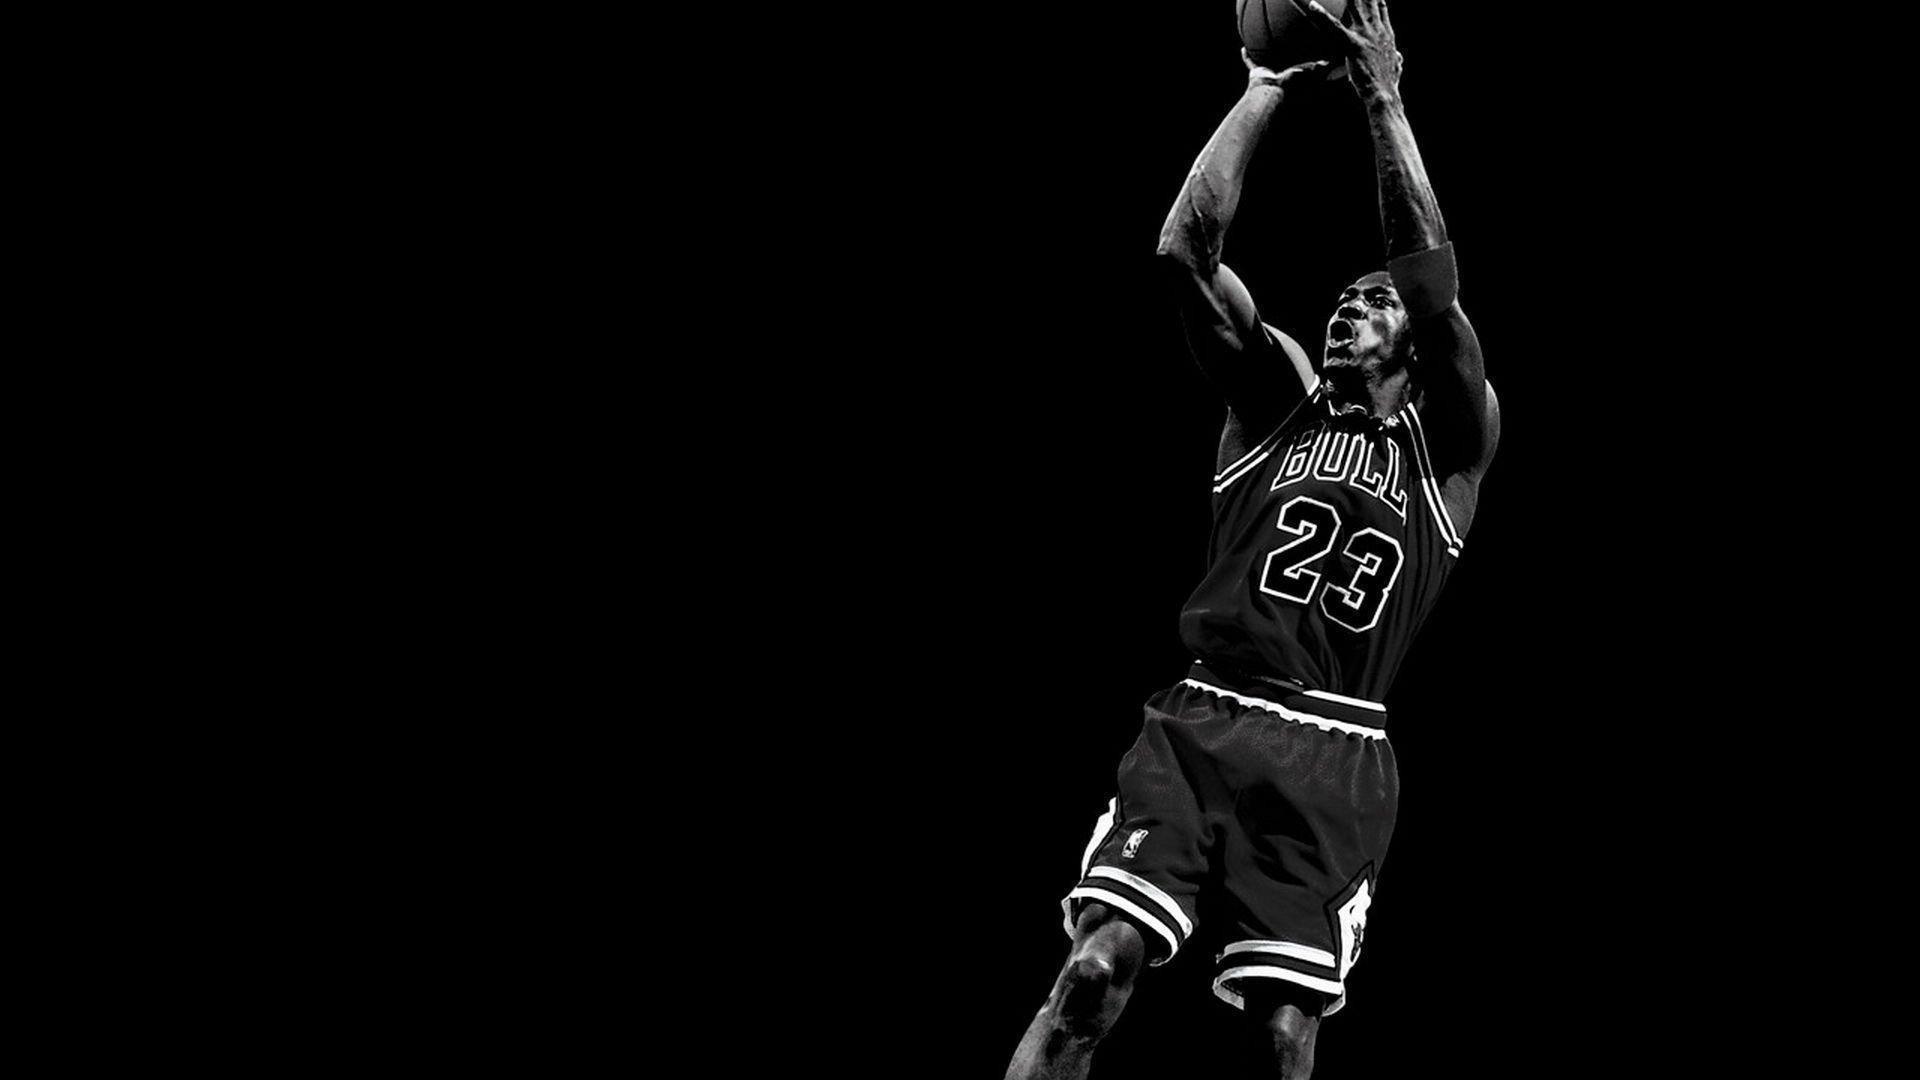 Jordan Hd Wallpaper 77 Pictures